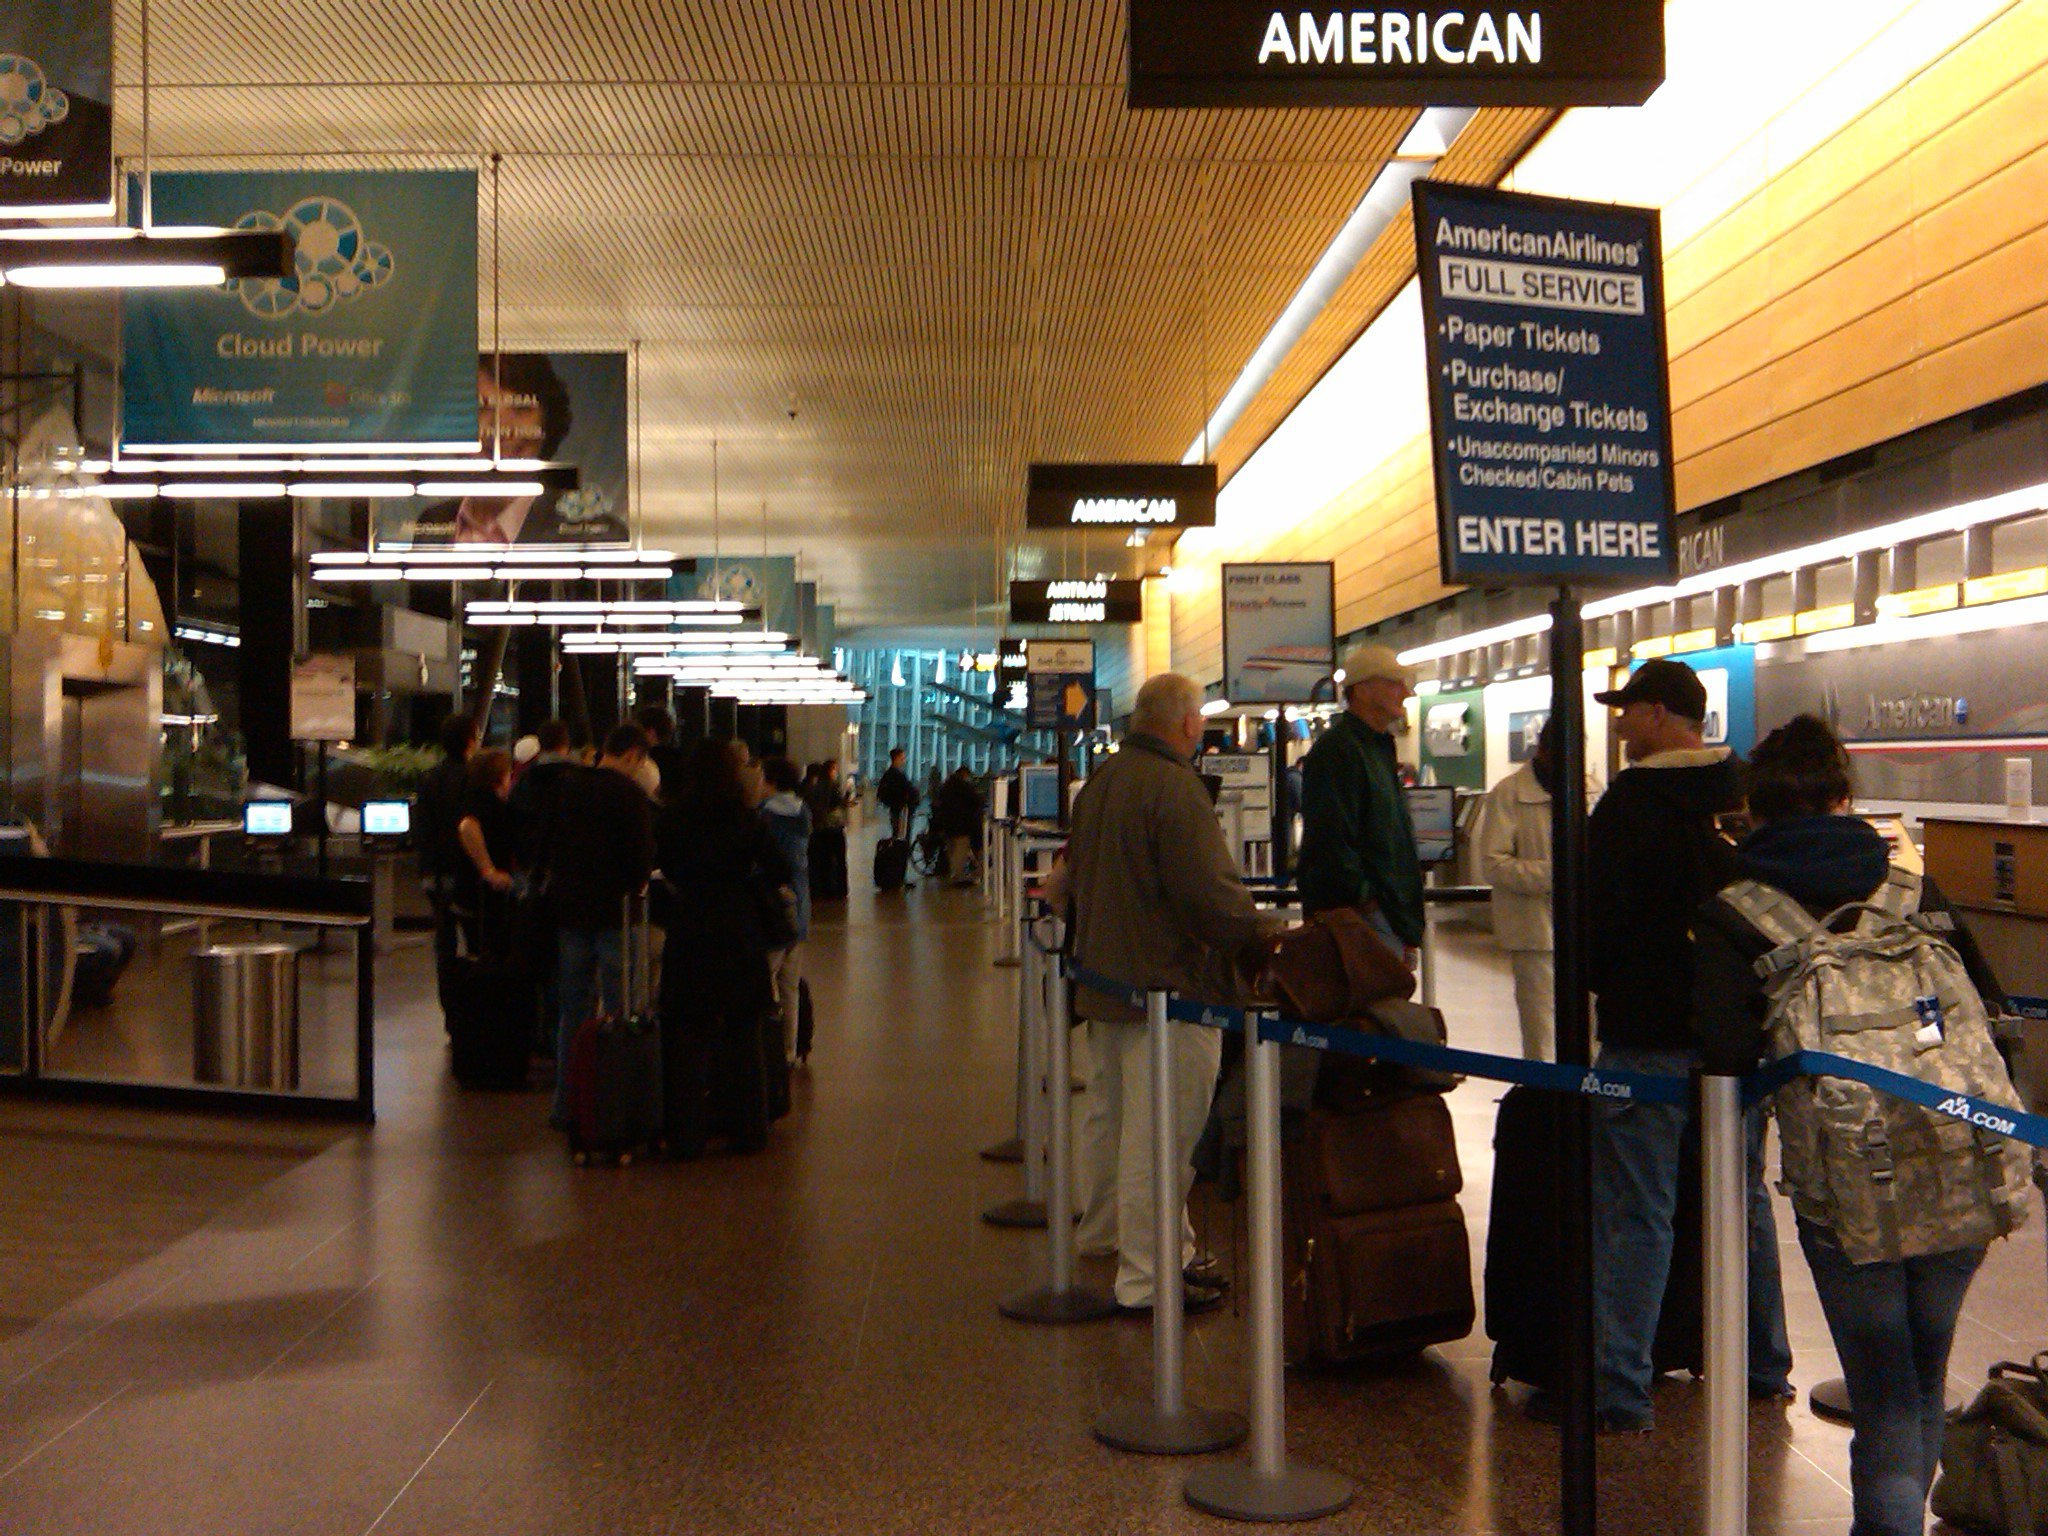 line of 50+ travelers at airport ticket counter with no agents available